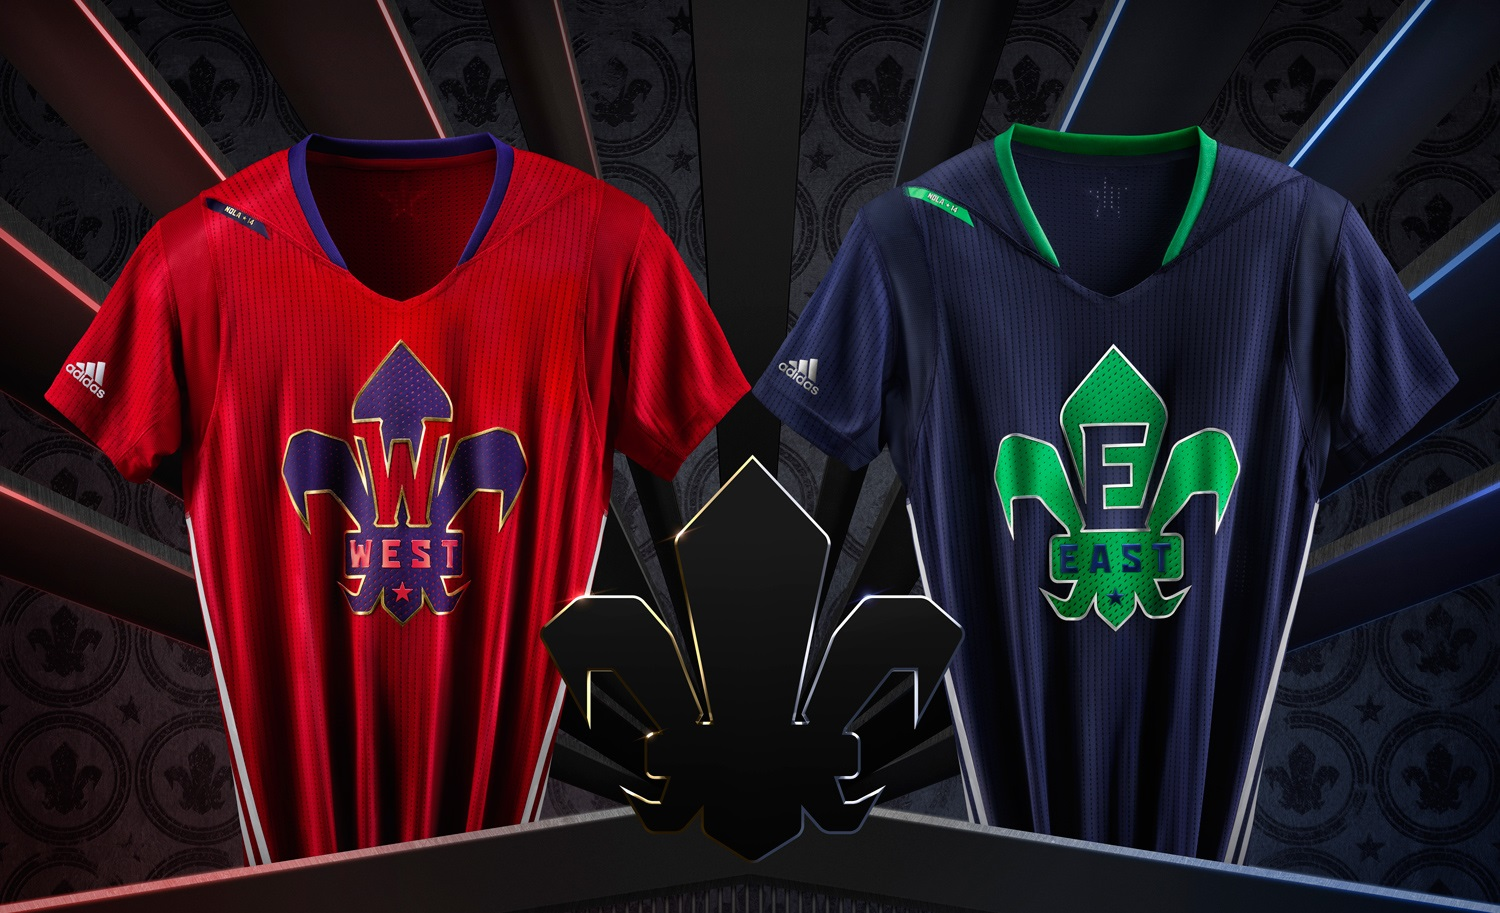 2014 NBA All-Star jerseys (Courtesy of Adidas)